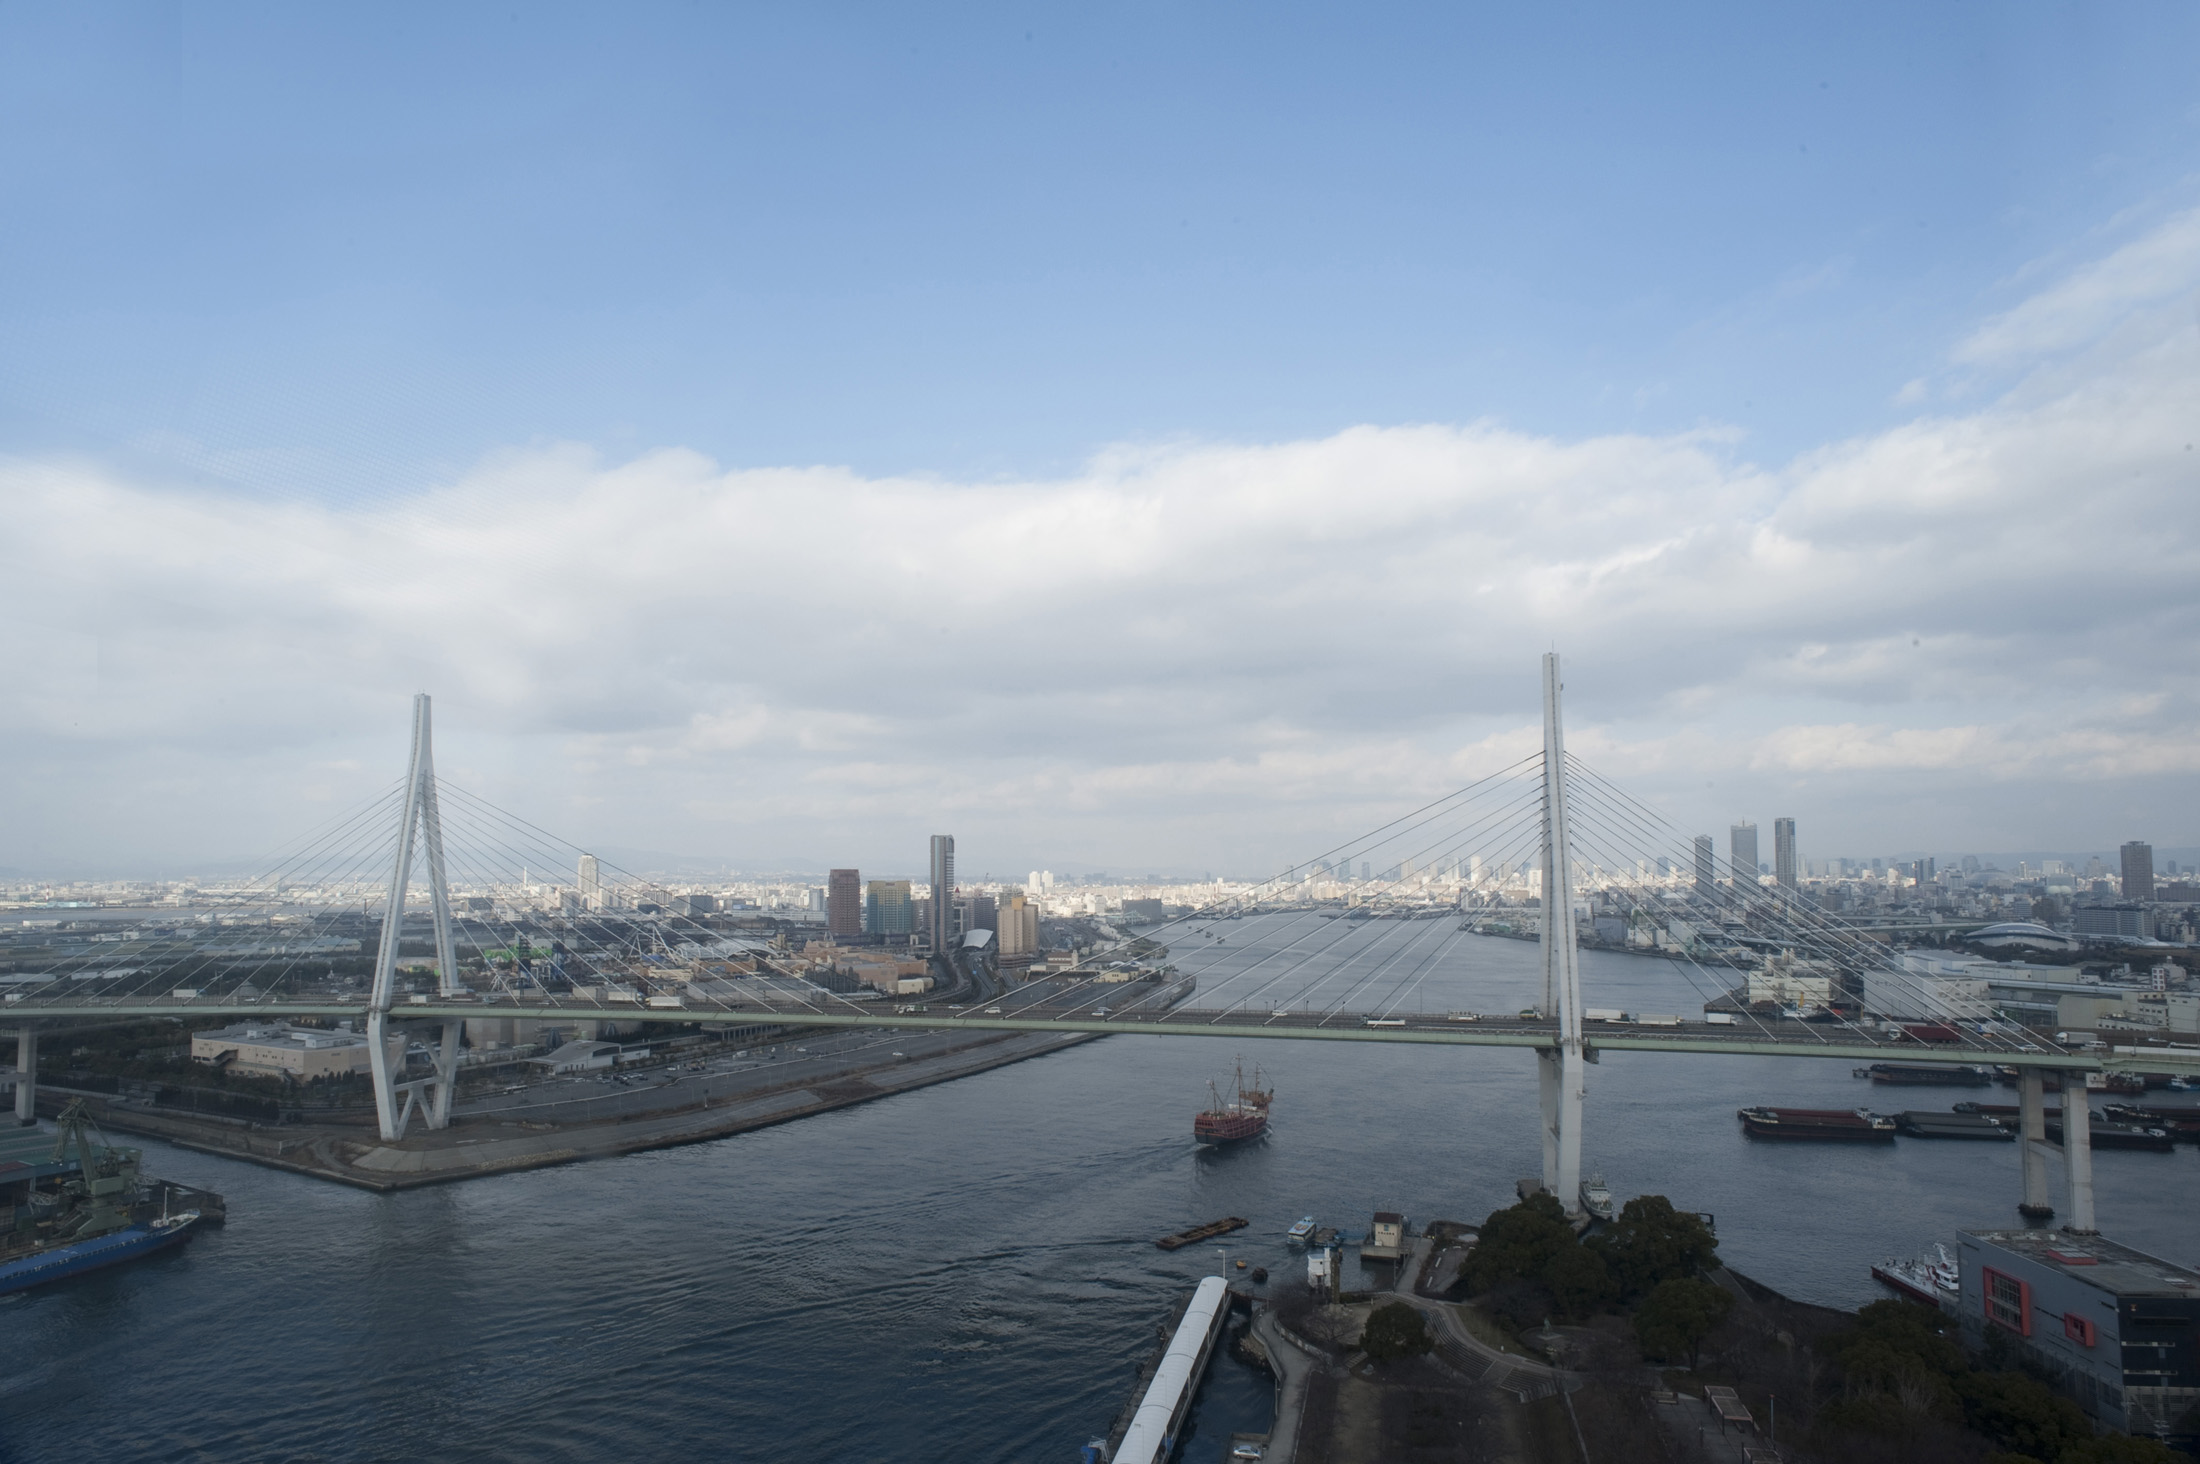 The Tempozan Cable Stay Bridge, Osaka, Japan